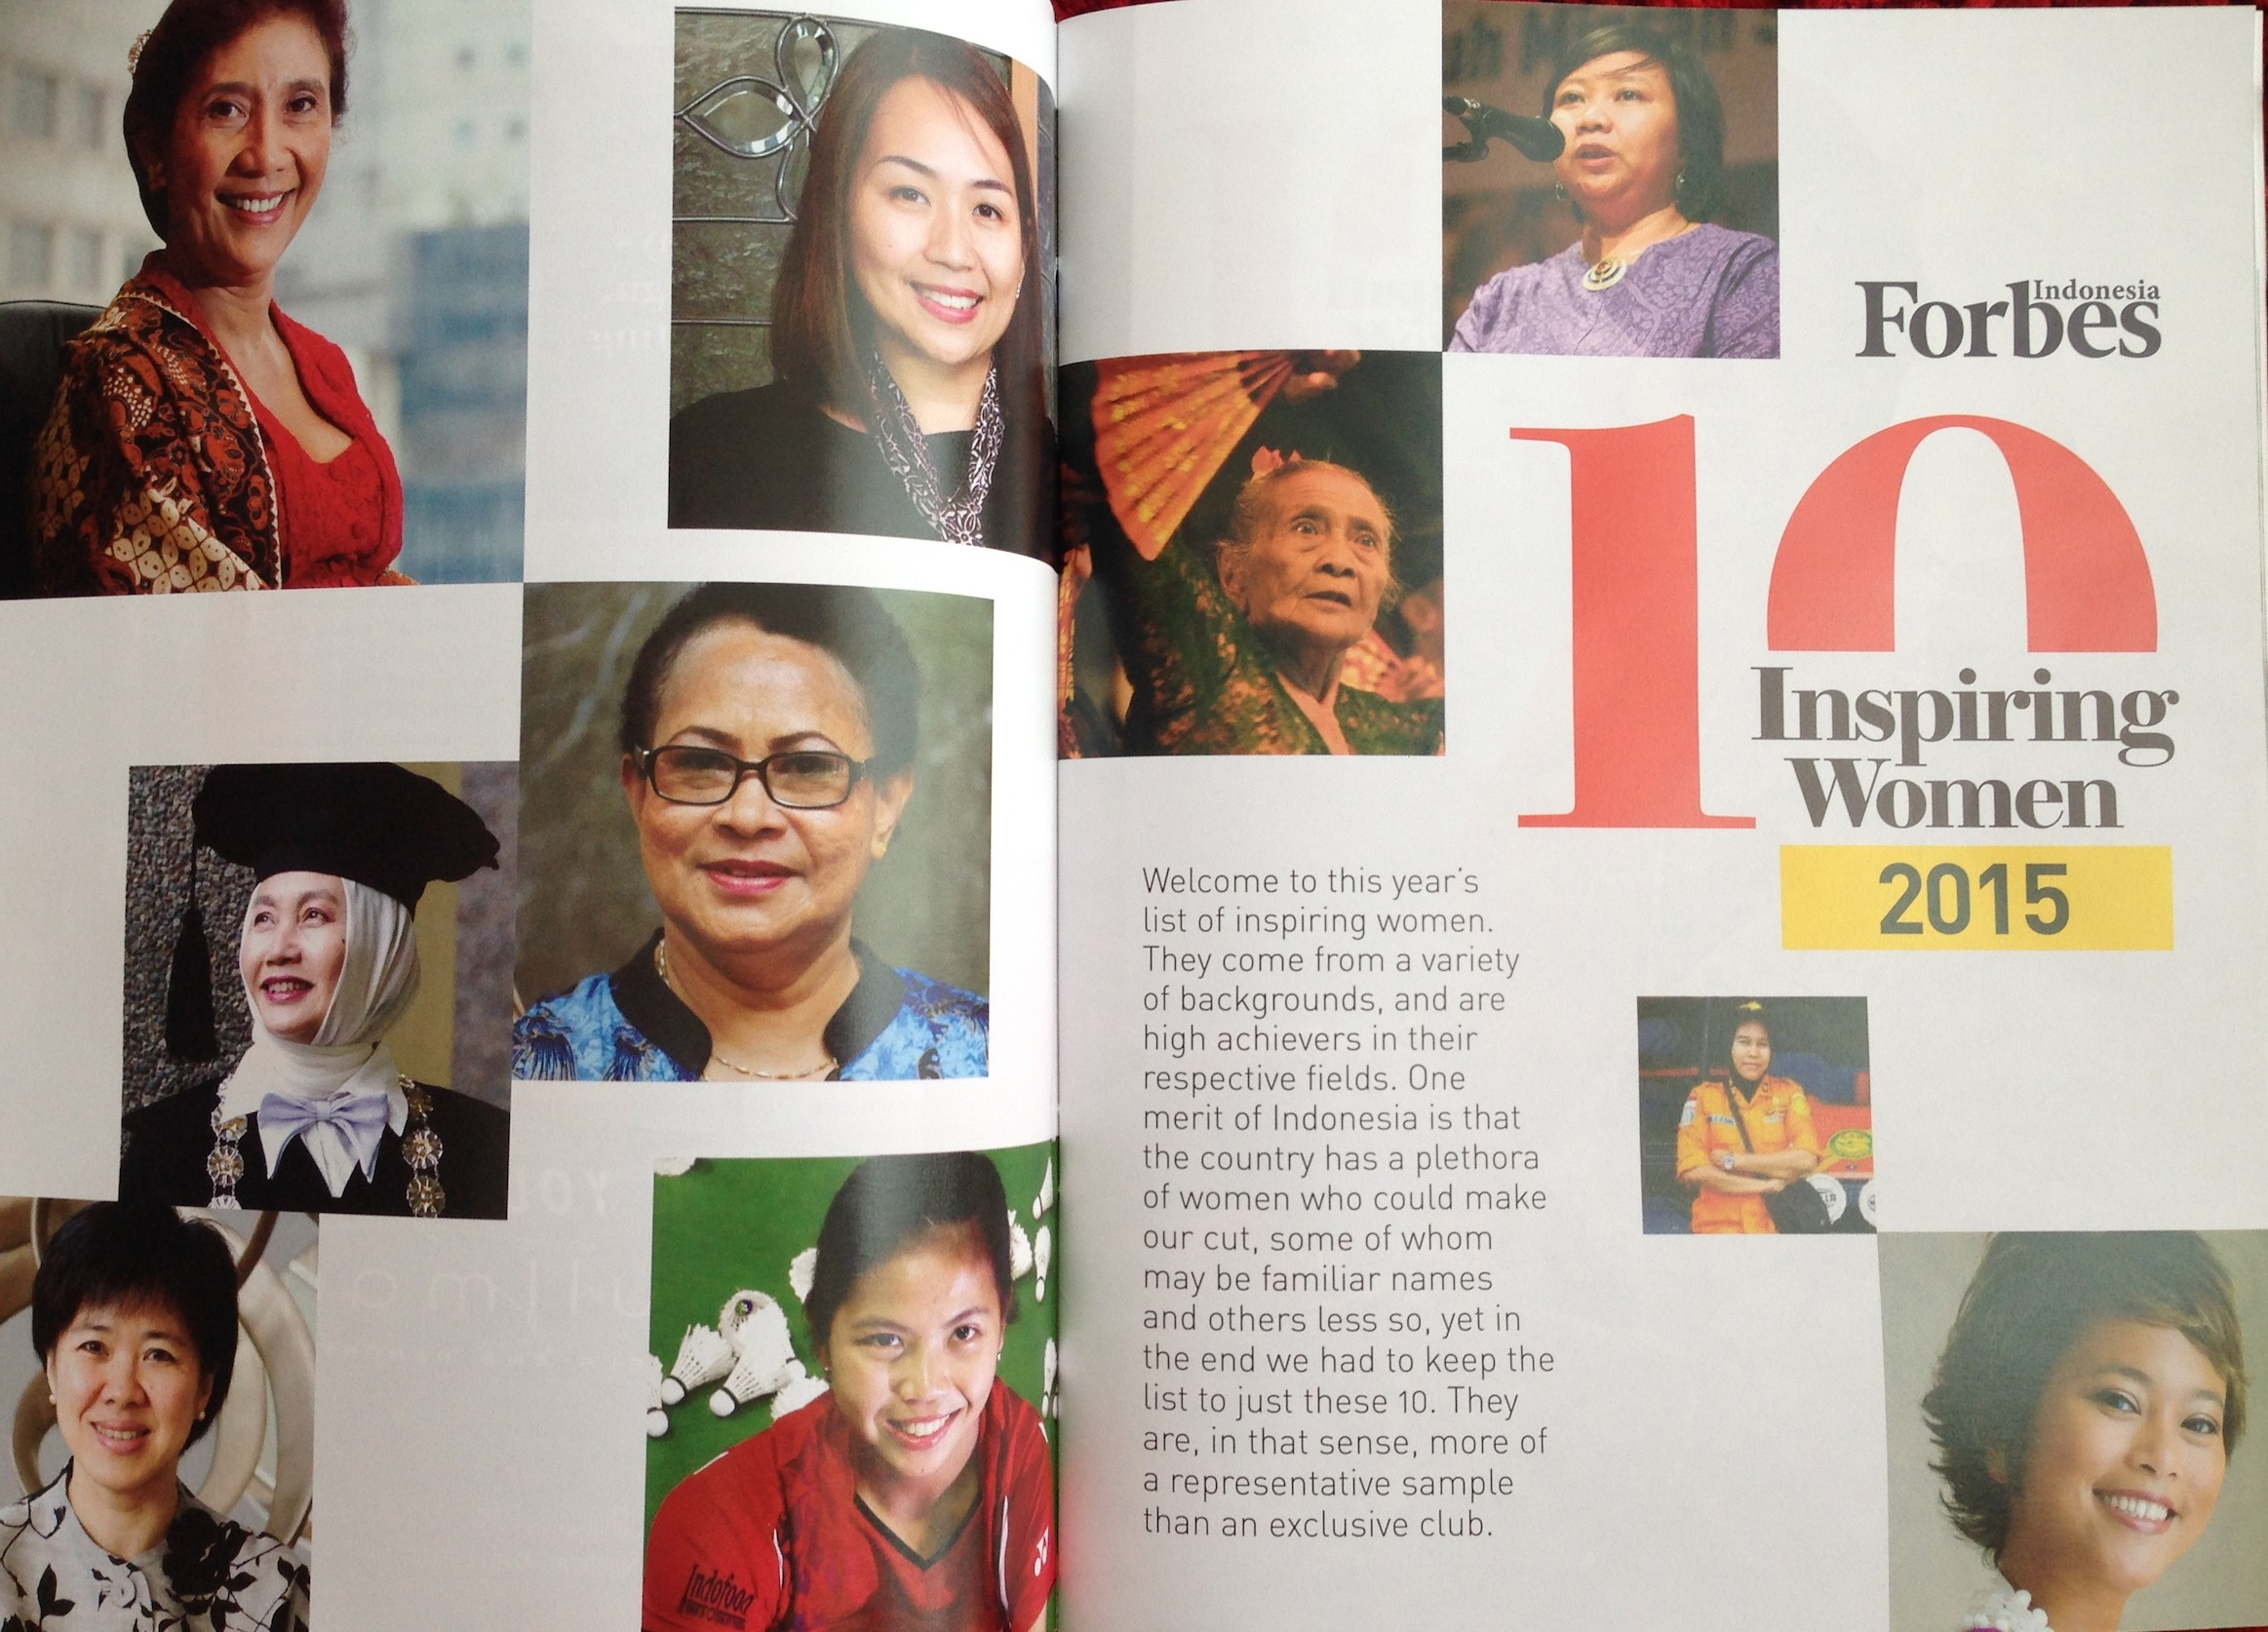 Forbes Indonesia 10 Inspiring Women 2015.